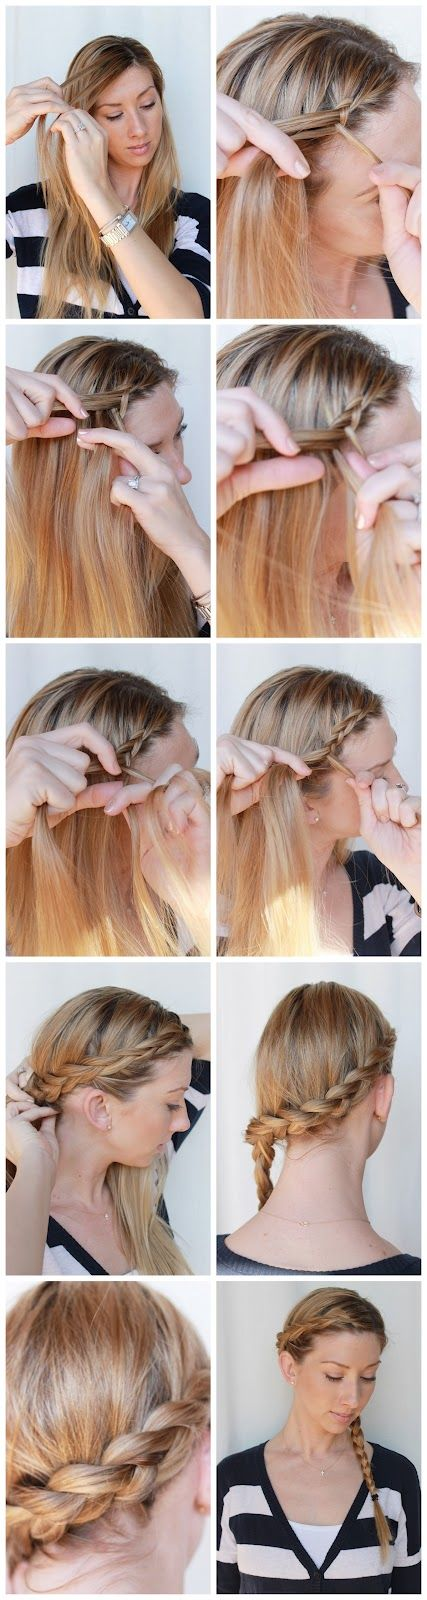 Linen, Lace, & Love: How To: Wrap Around Side Braid I wish I could do this where's Val when you need her